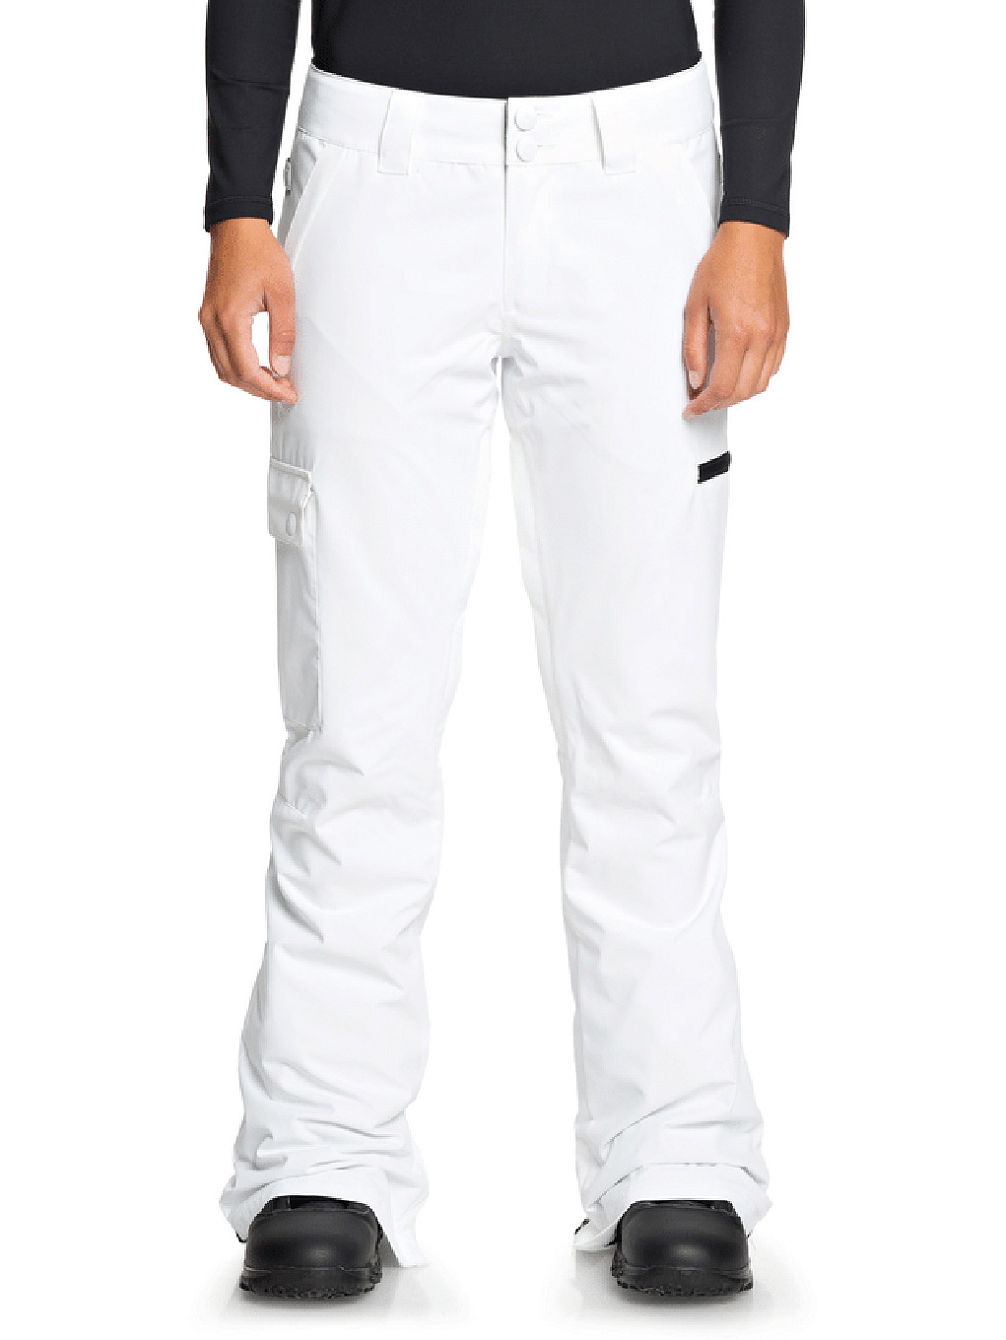 Recruit Pantalon